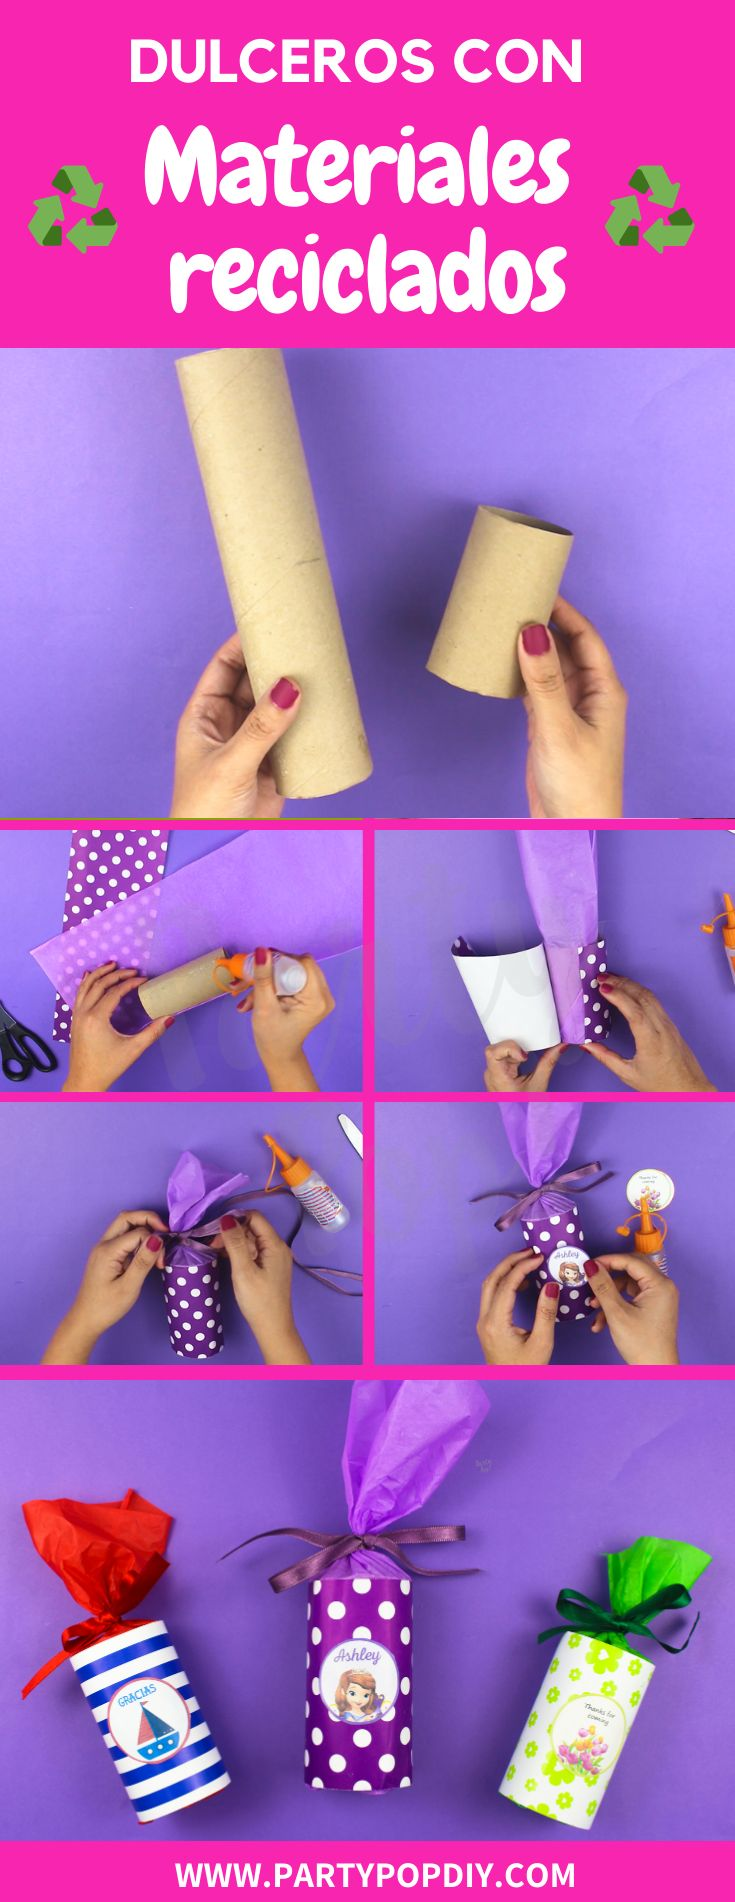 #DULCEROS #materialesreciclados #manualidades #ideaspararegalar #dulcerosdepapel #rollosdepapel Baby Shower, Diy, Flower, Recycled Materials, Recycled Crafts, Sachets, Template, Gift, Crates